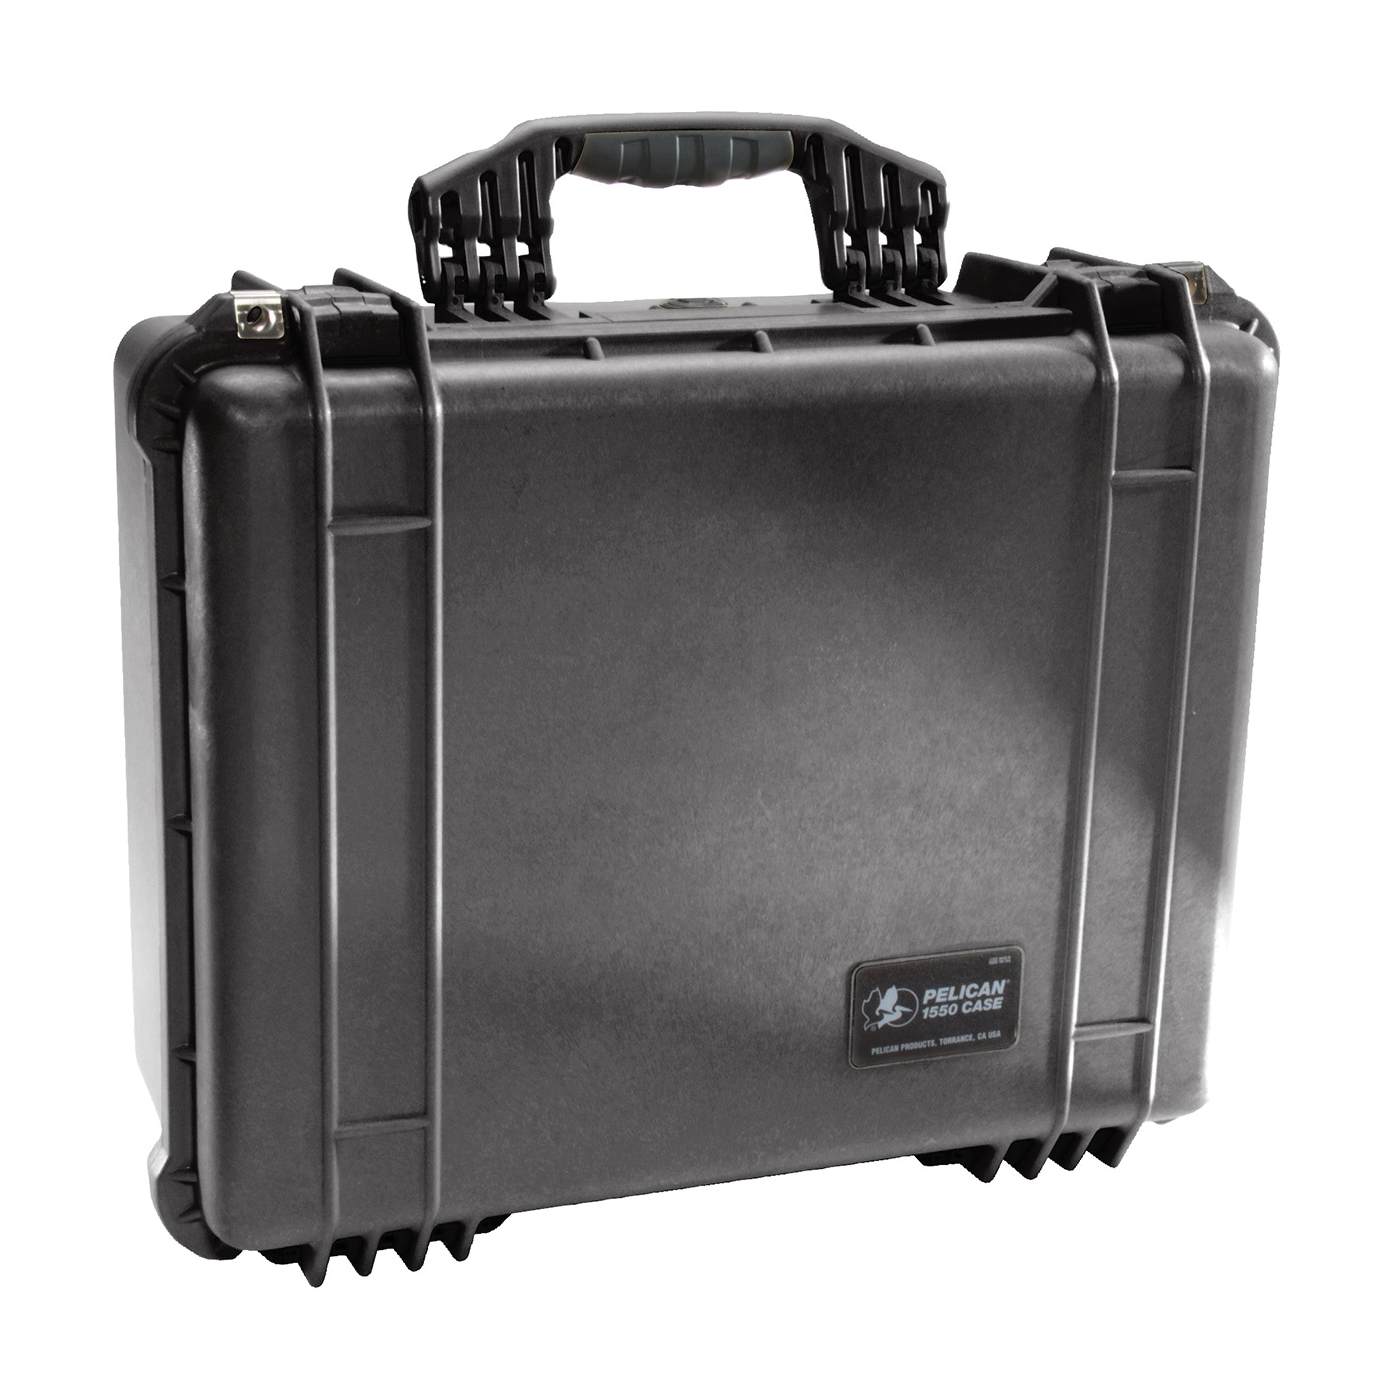 Pelican™ PROTECTOR CASE™ 1720-000-110 Long Gun Case With Lid Liner and Foam, 42 in L x 13-1/2 in W x 5-1/4 in H, 1.72 cu-ft, Polypropylene